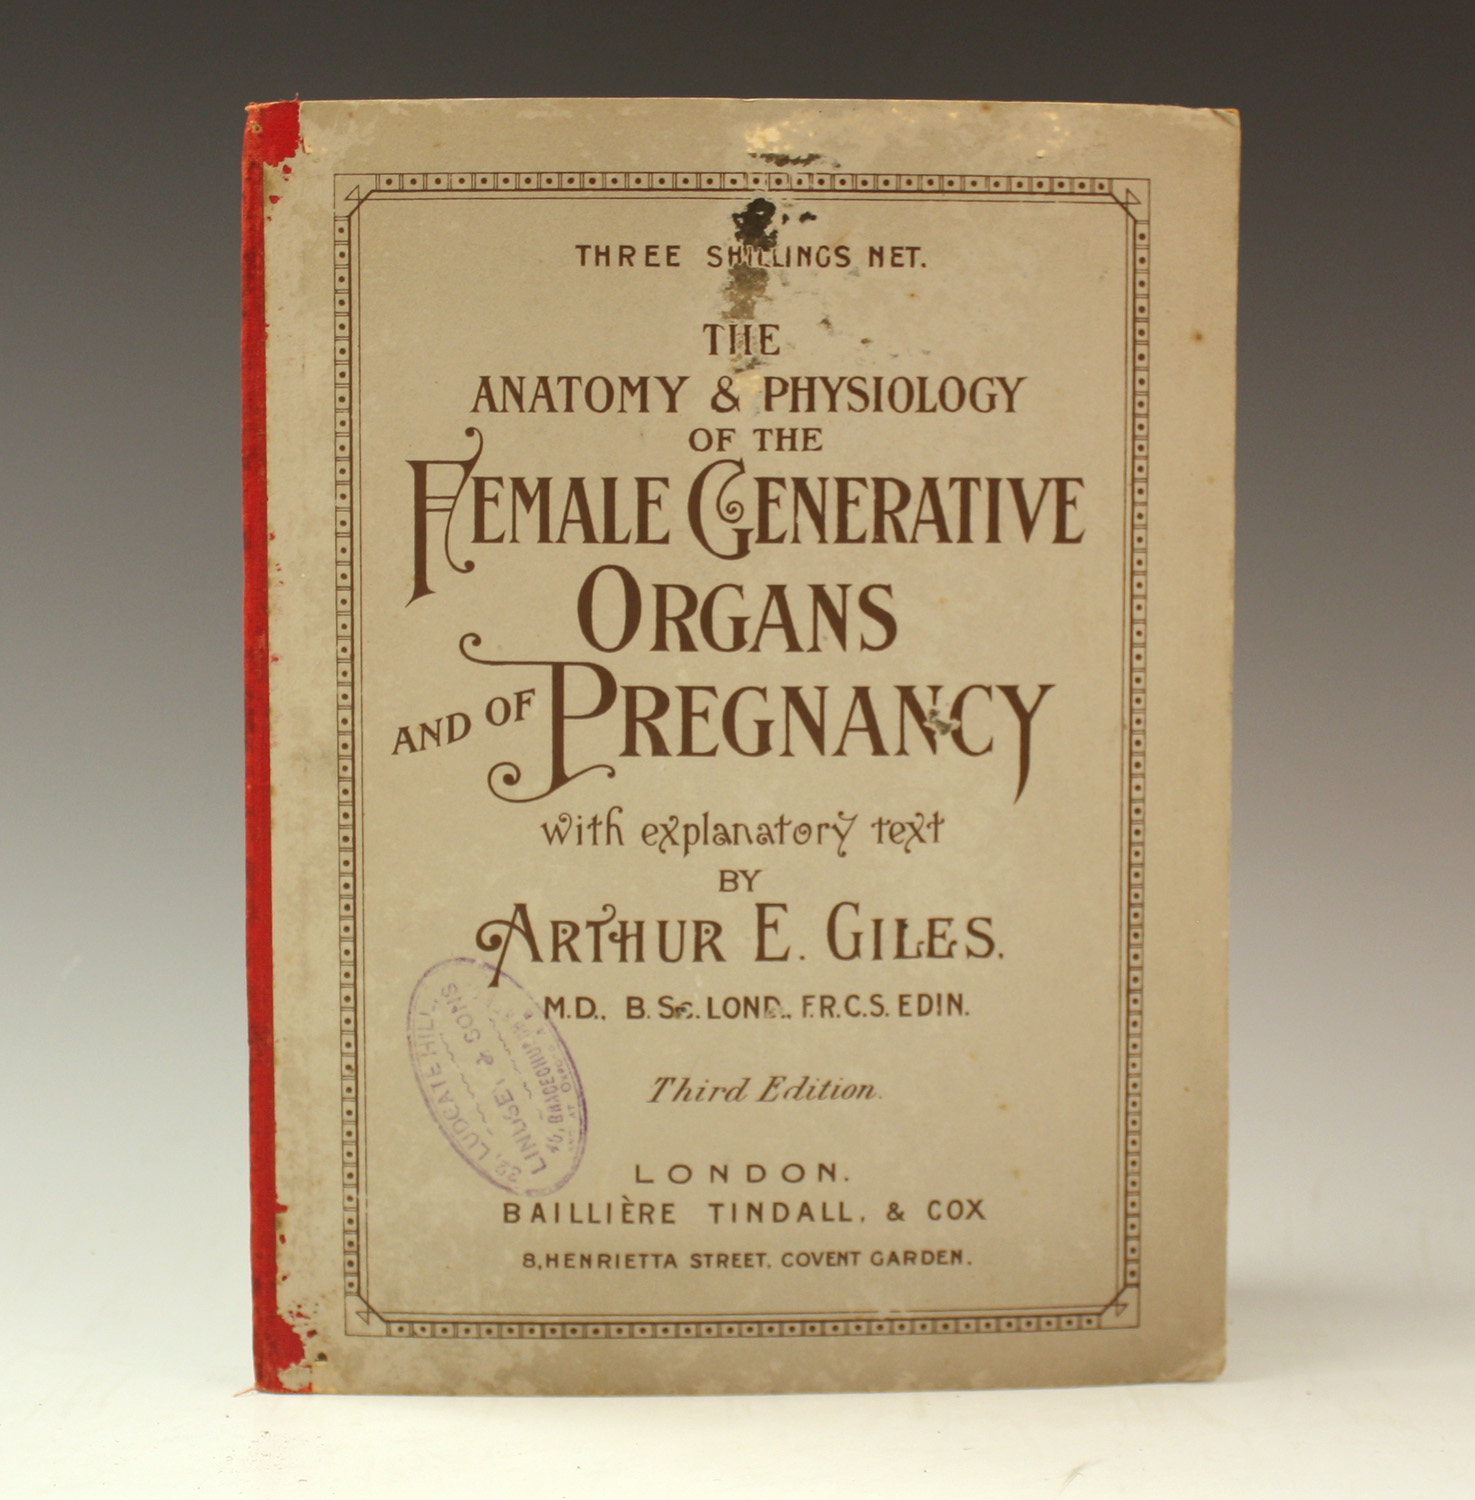 GILES, Arthur E. Anatomy and Physiology of the Female Generative ...